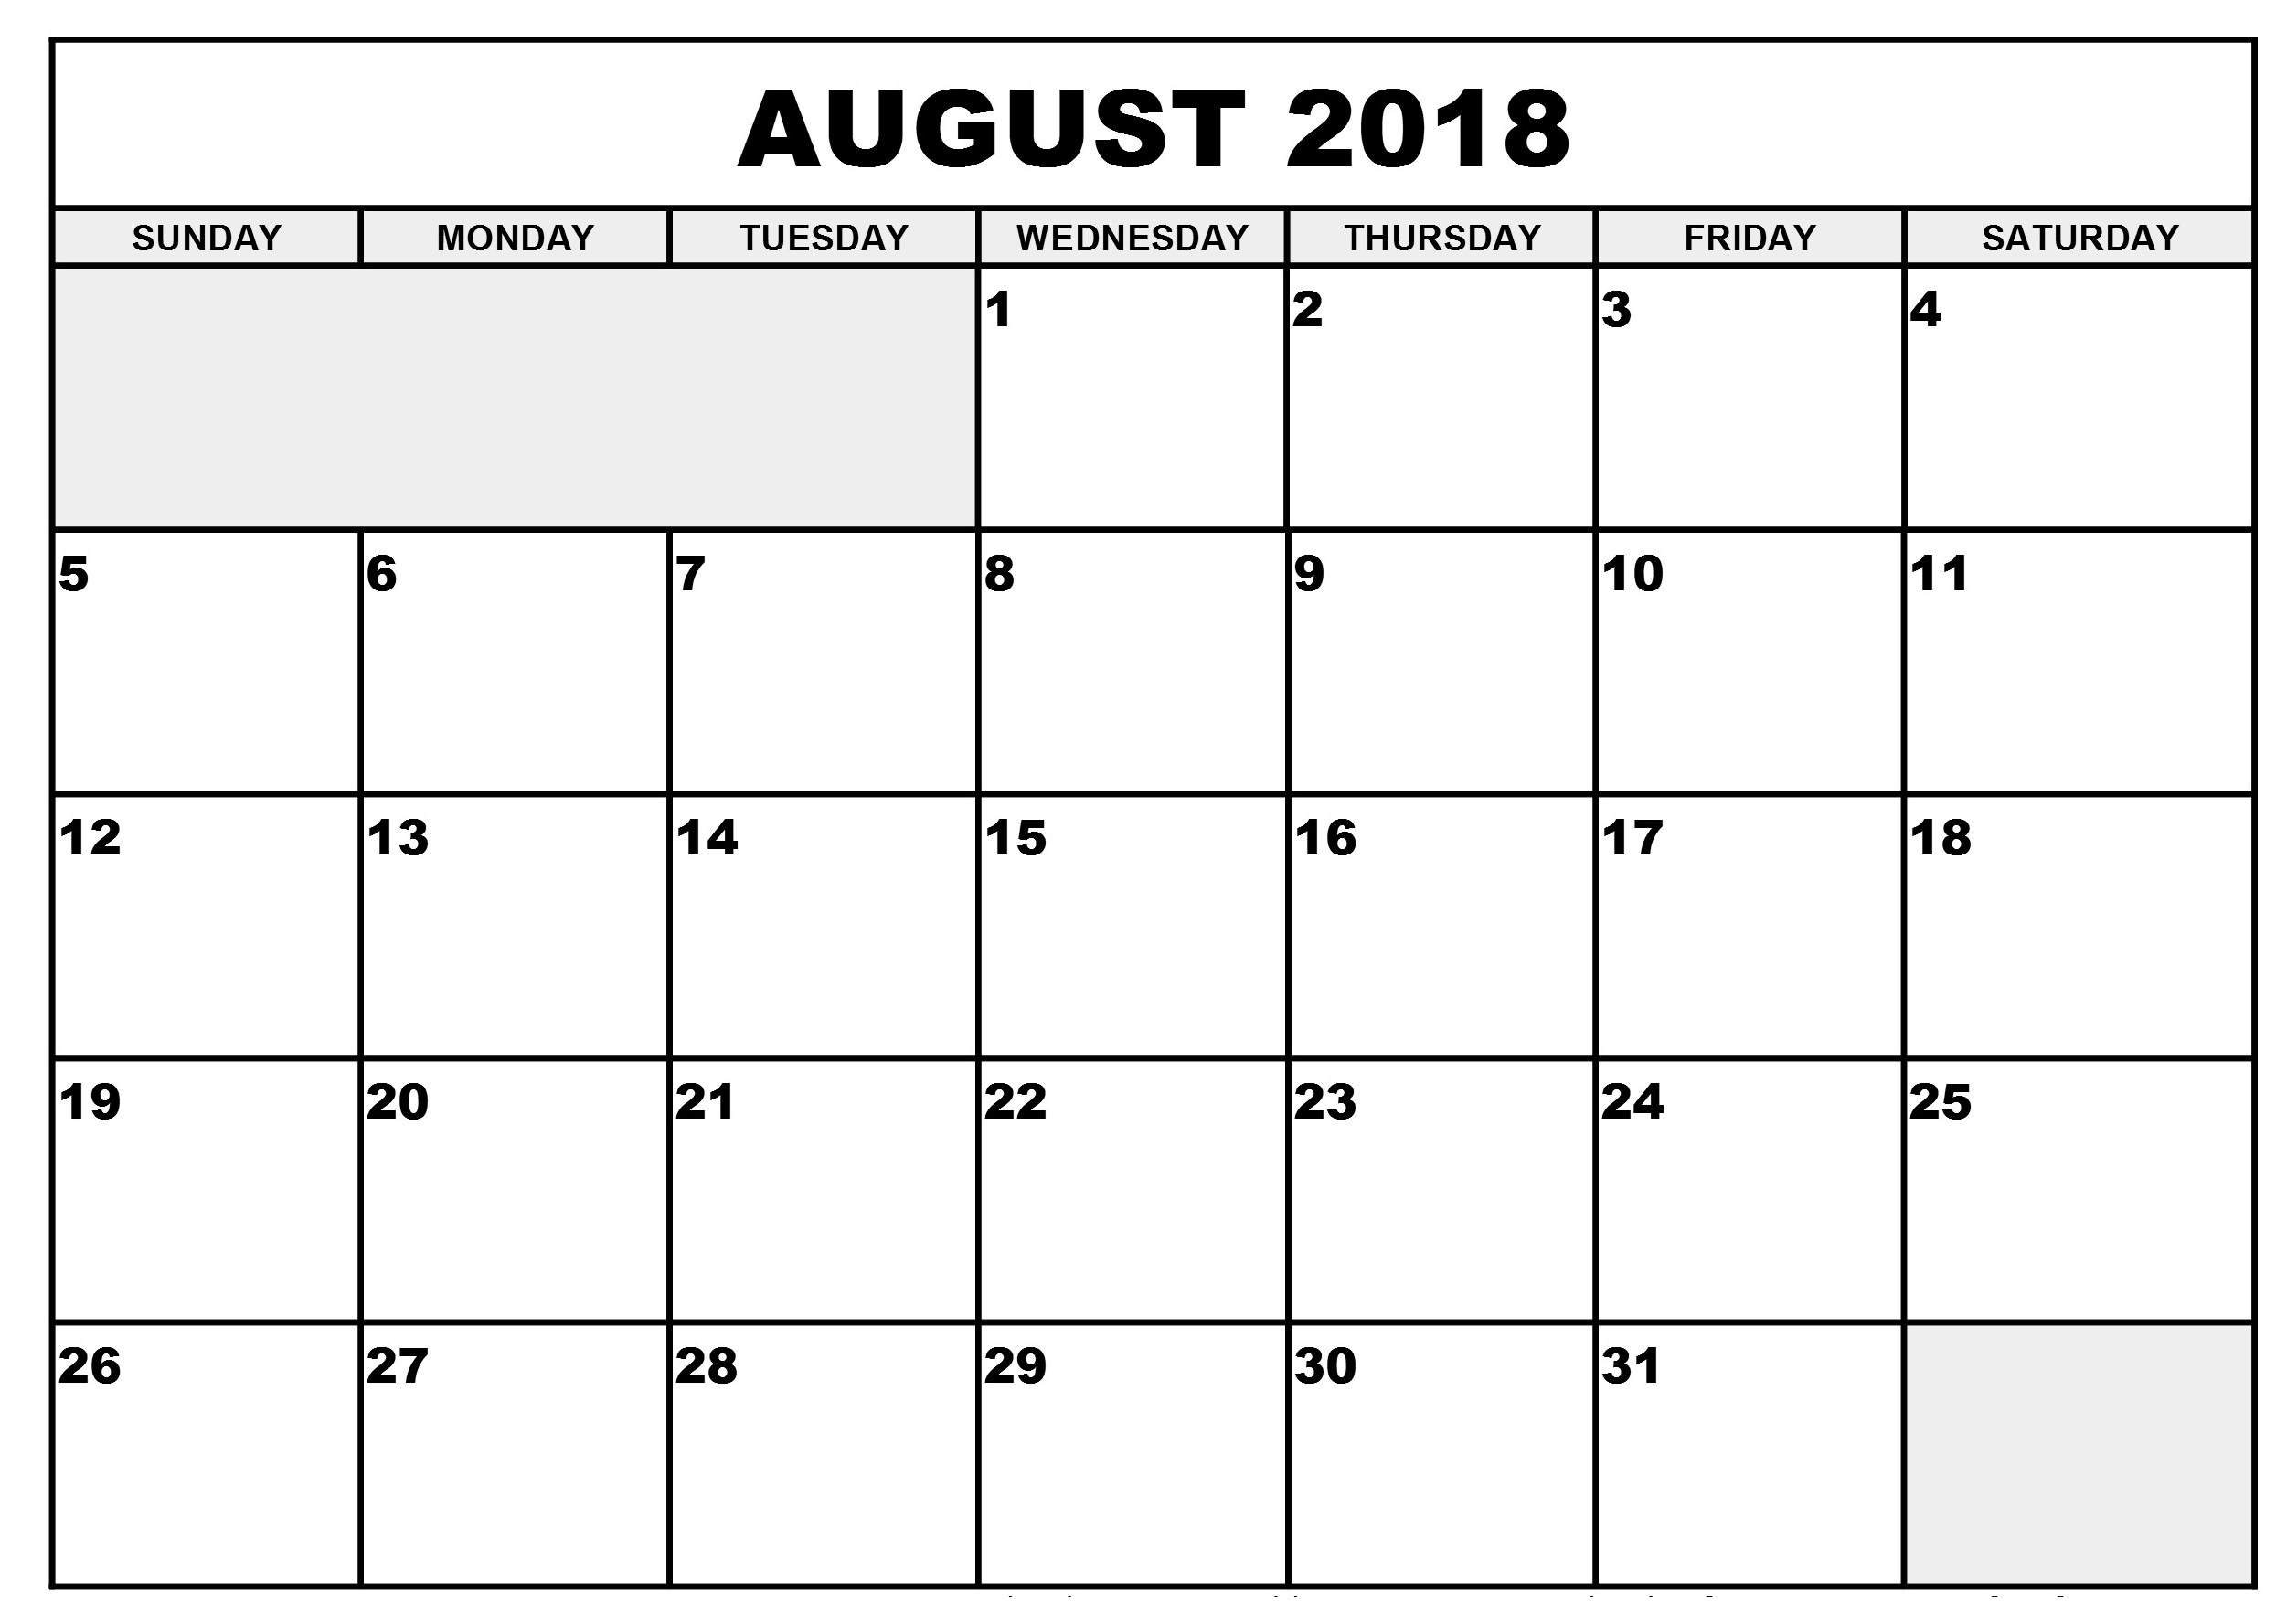 Calendar Monthly August : August calendar holidays usa uk malaysia singapore